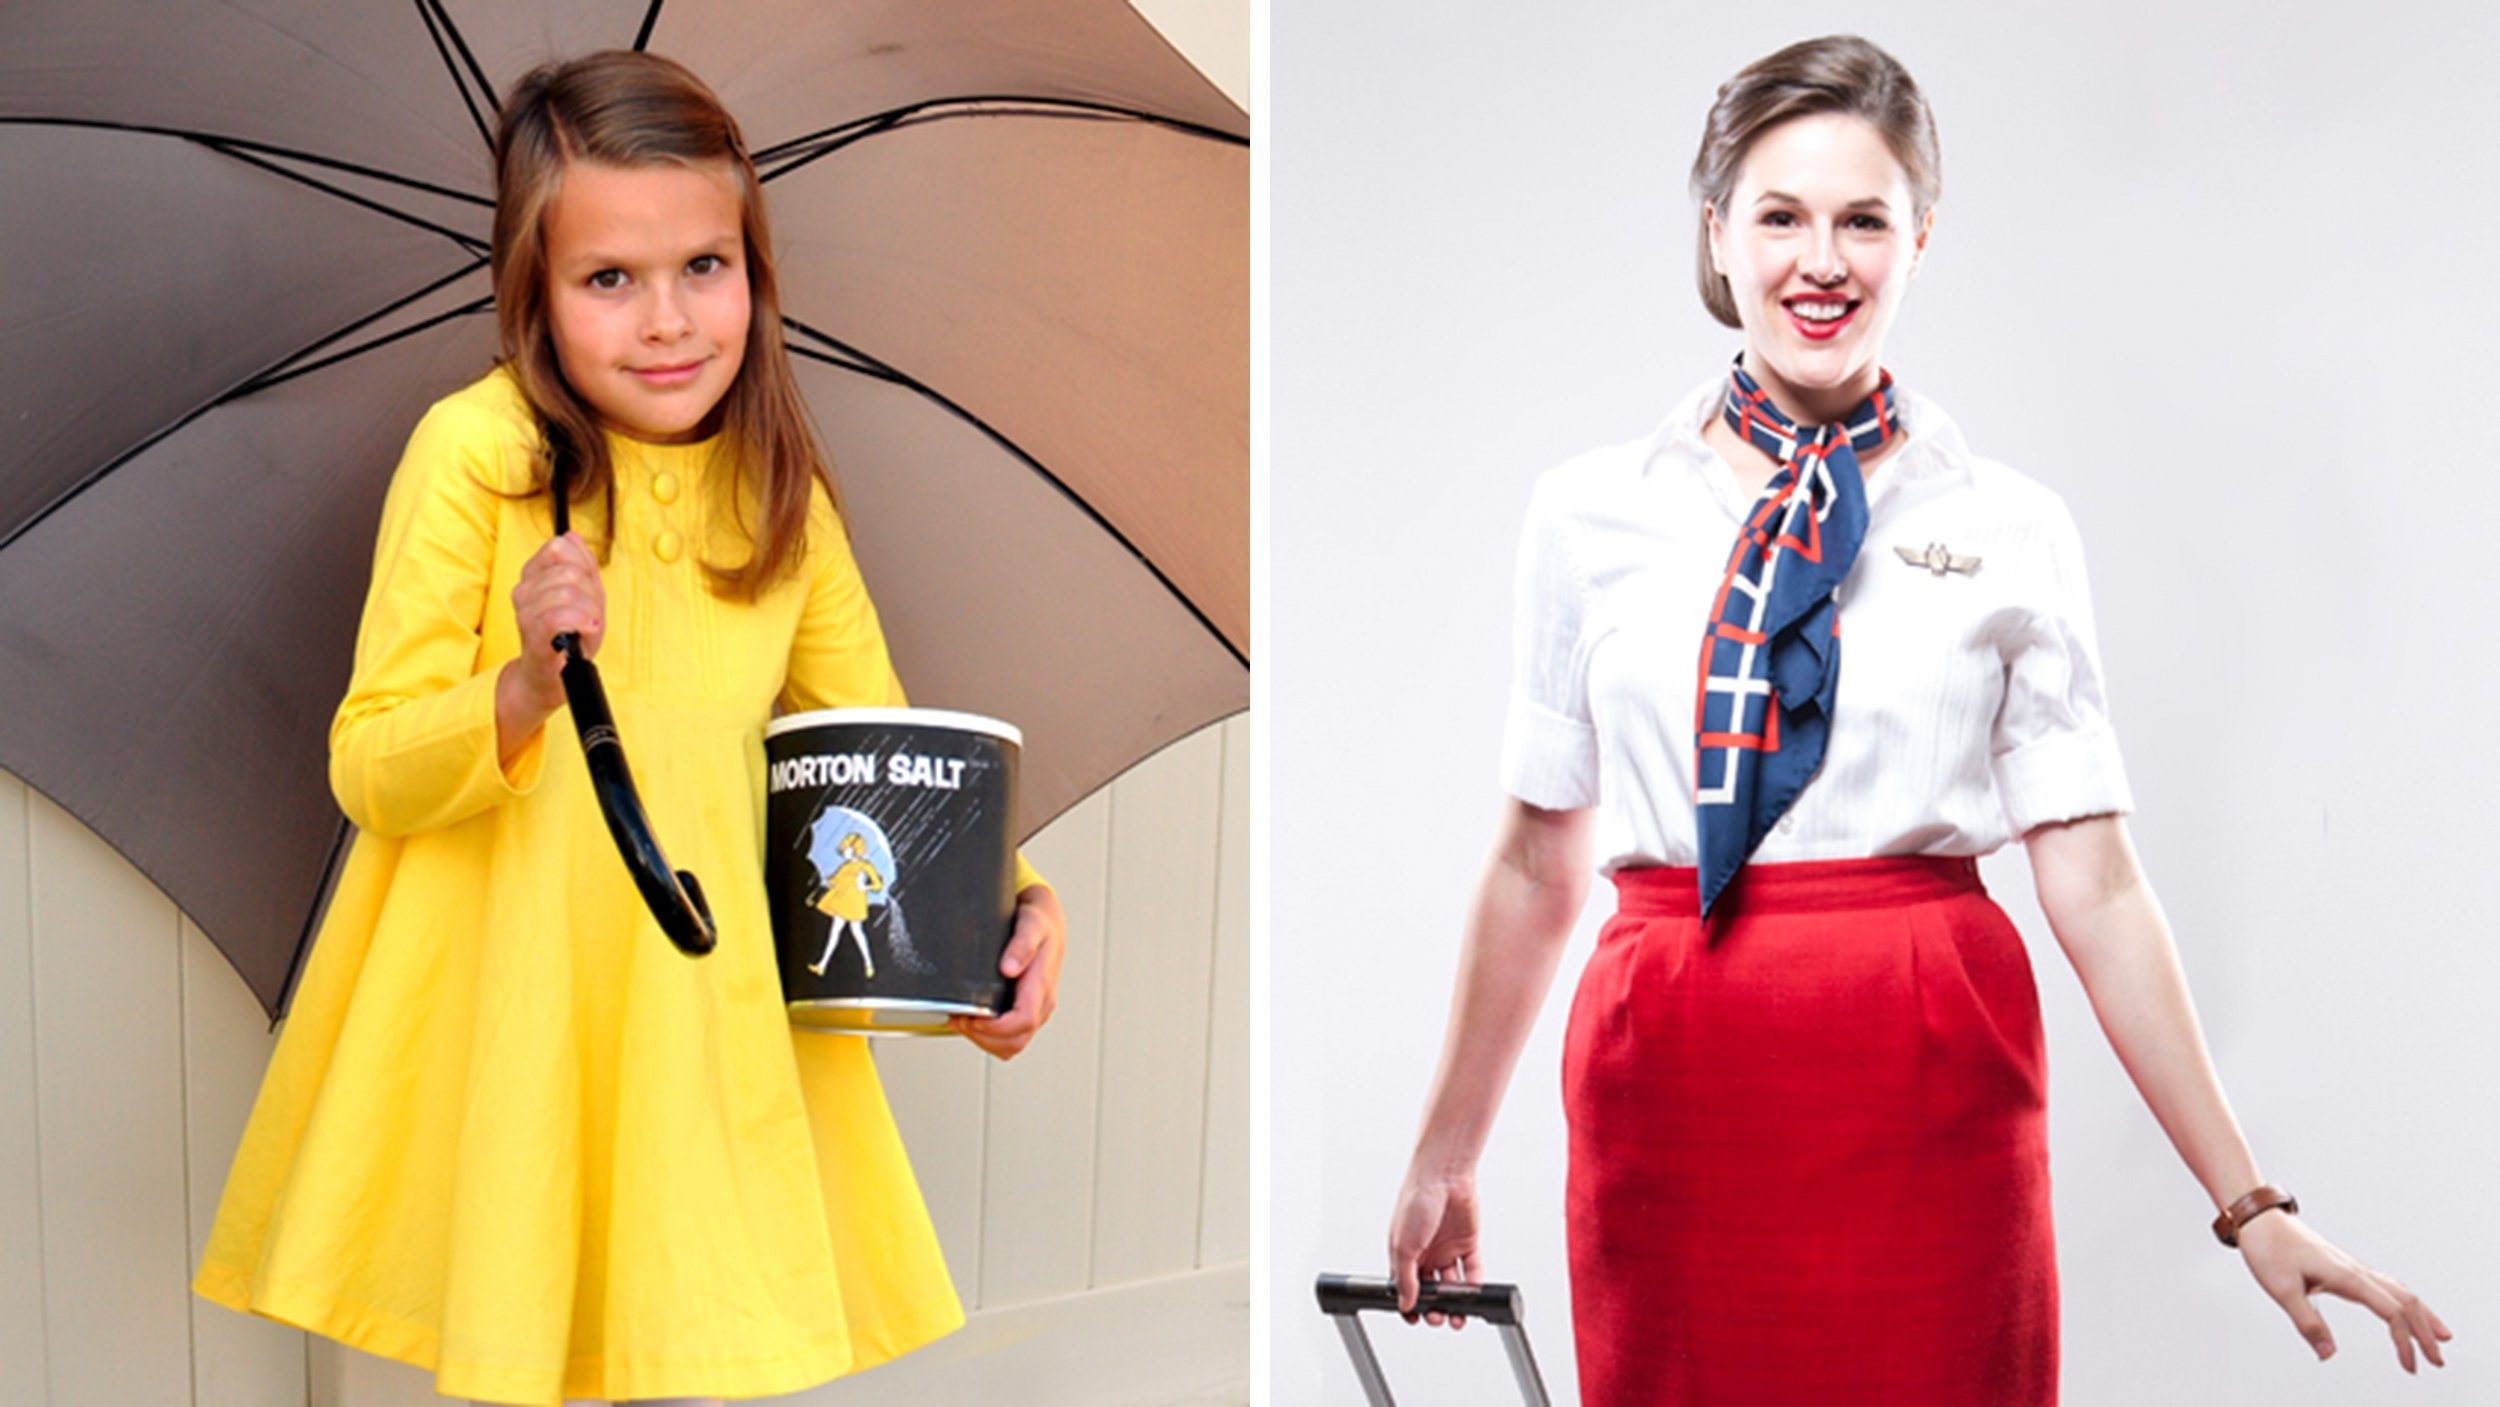 10 Stylish Make Your Own Halloween Costume Ideas last minute halloween diy costumes for busy parents today 22 2020